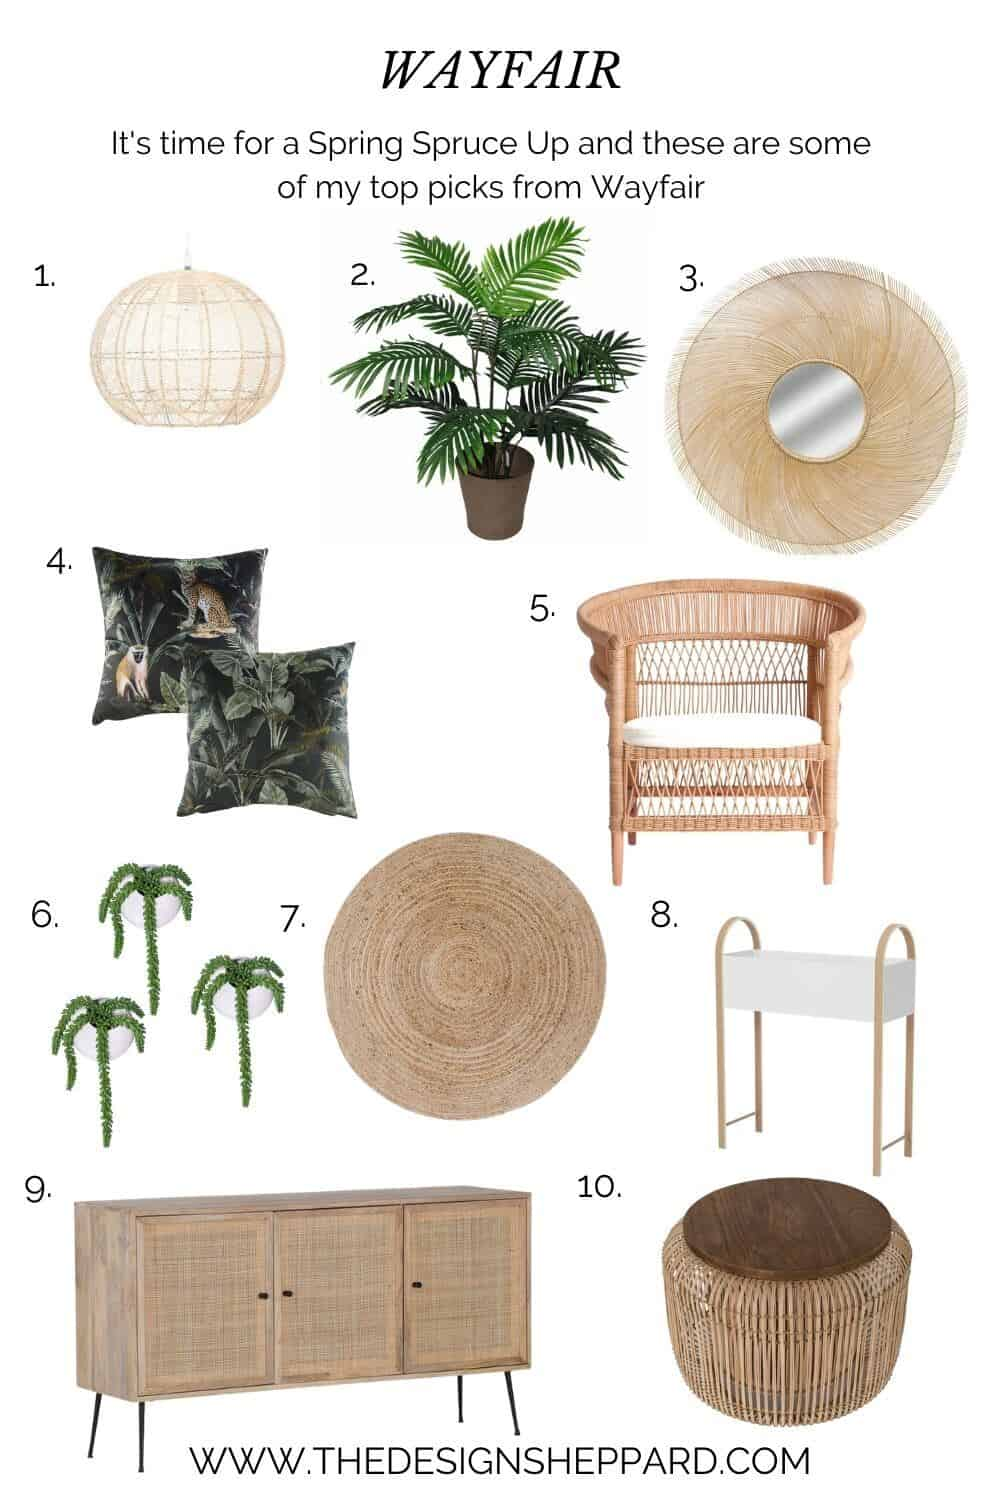 Give your home a spring spruce up with this selection of homeware from Wayfair